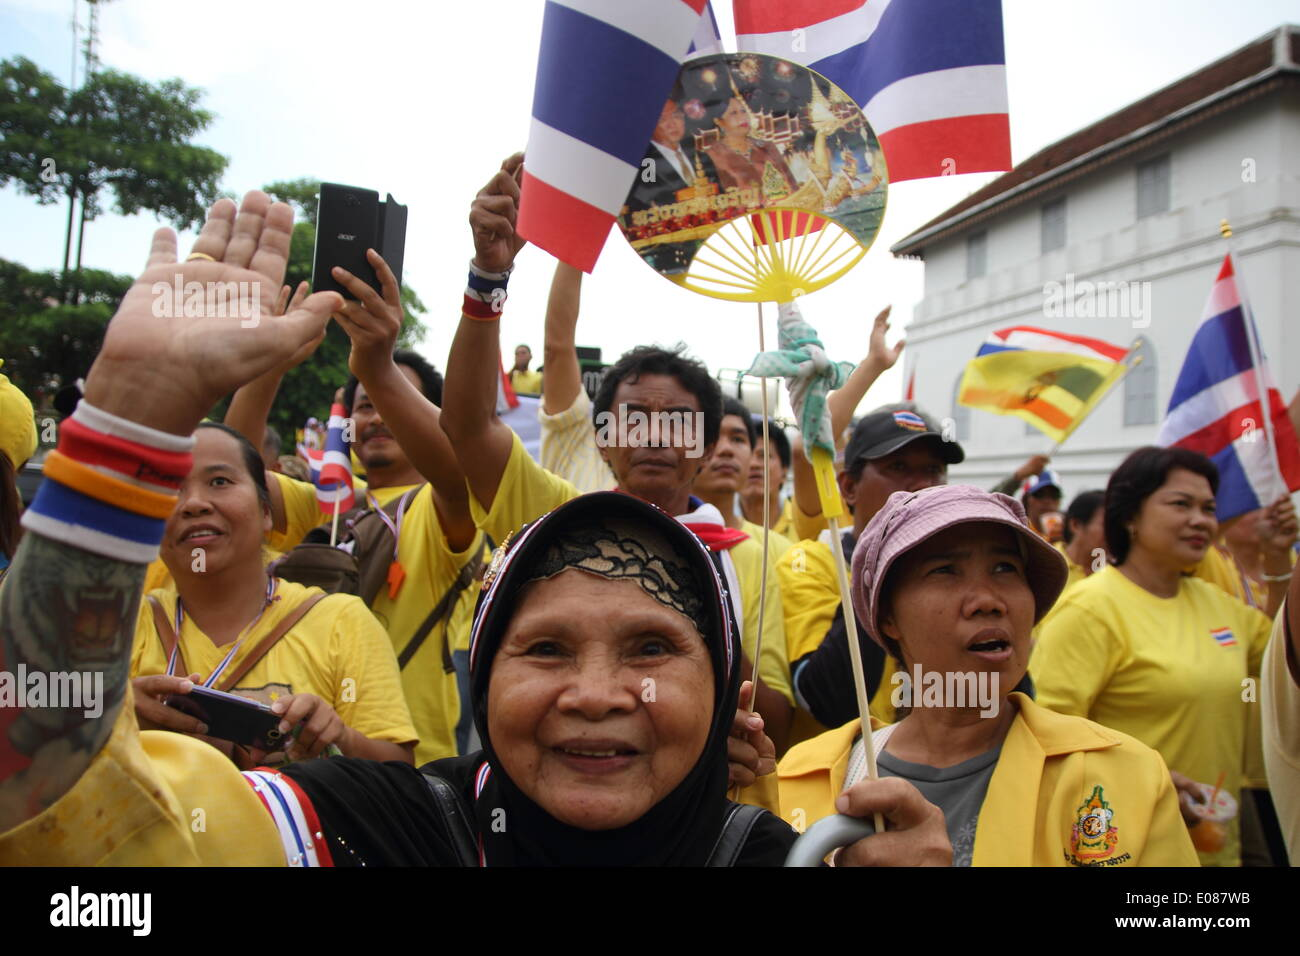 Bangkok, Thailand. 5th May 2014. Anti-government protesters cheers during a rally showing their loyalty to King Bhumibol Adulyadej on the 64th anniversary of his Coronation Day. Anti-government protesters gathered close to the Grand Palace on Coronation Day. Thailand's revered King Bhumibol Adulyadej made a rare public appearance to mark the 64th anniversary of his coronation. Credit:  Sanji Dee/Alamy Live News - Stock Image